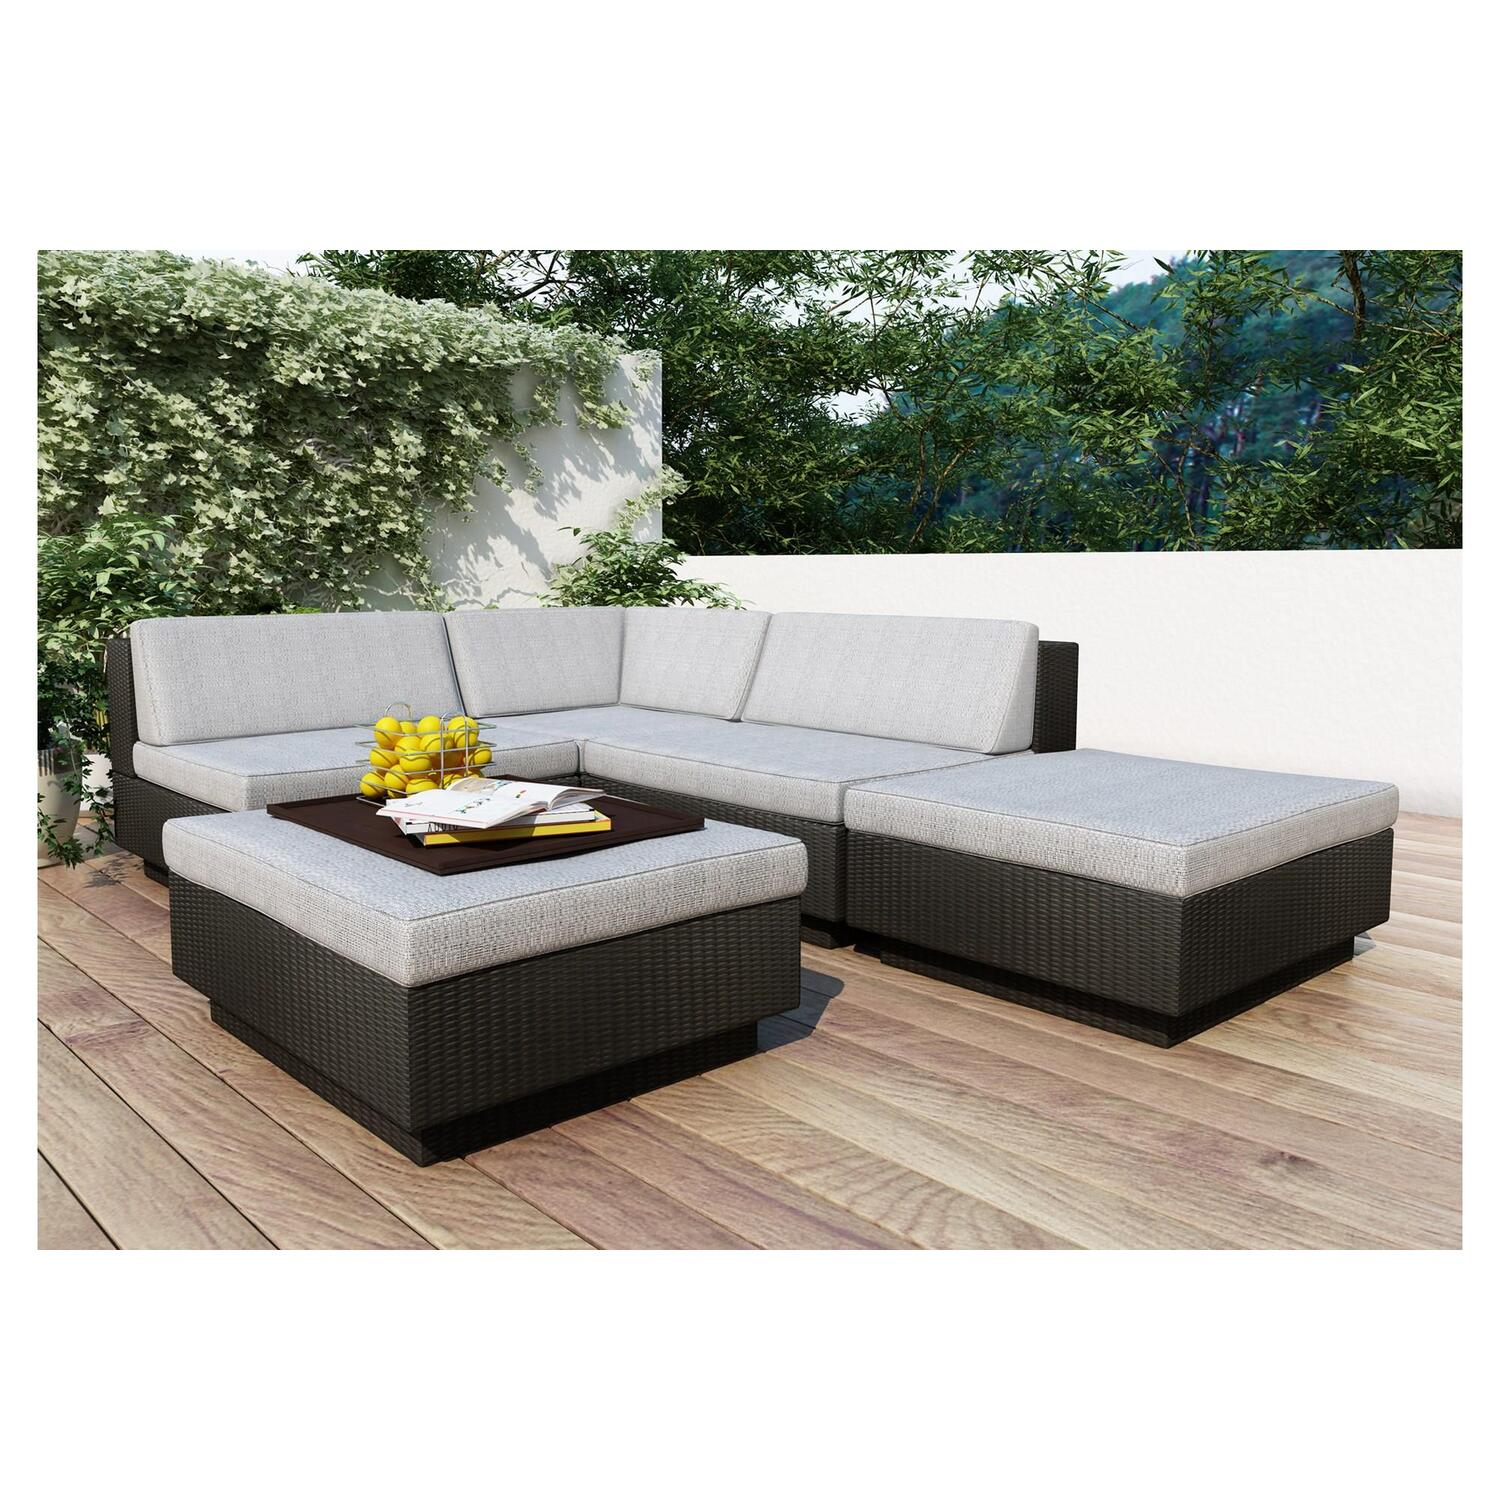 Park Terrace Textured Black 5 Piece Sectional Patio Set